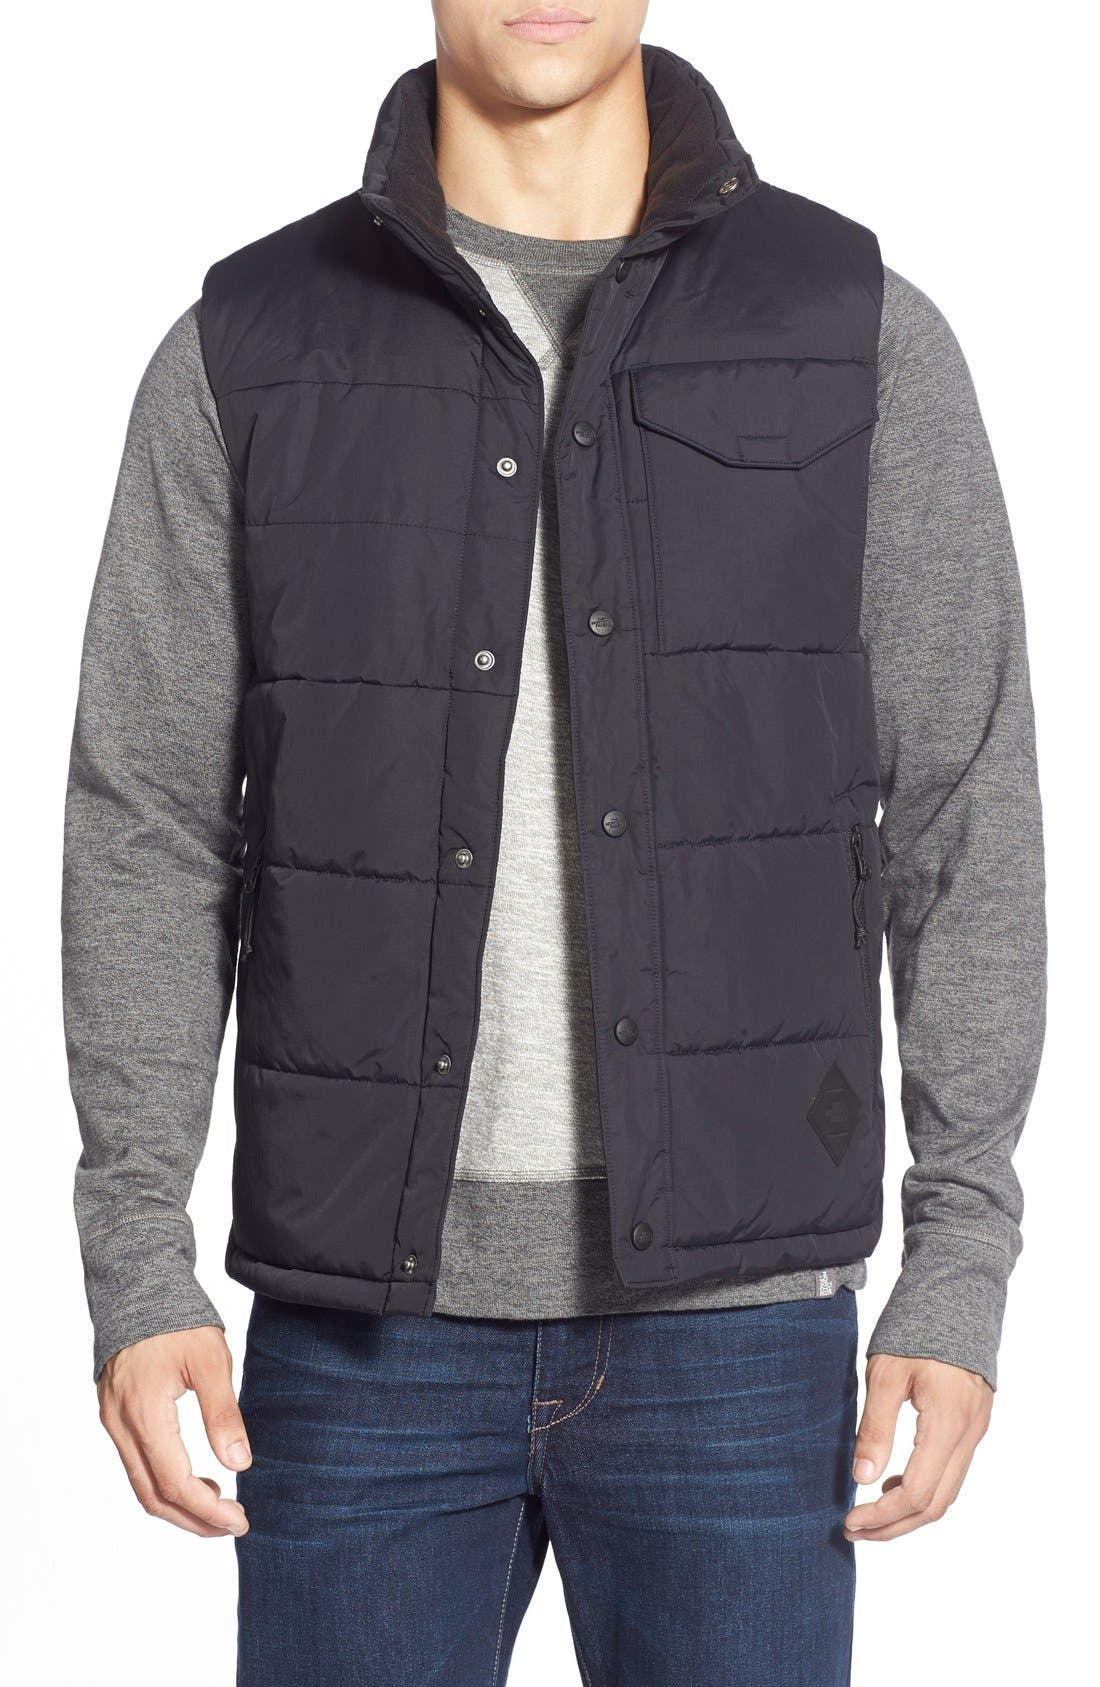 Alternate Image 1 Selected - The North Face 'Patrick's Point' Quilted Vest